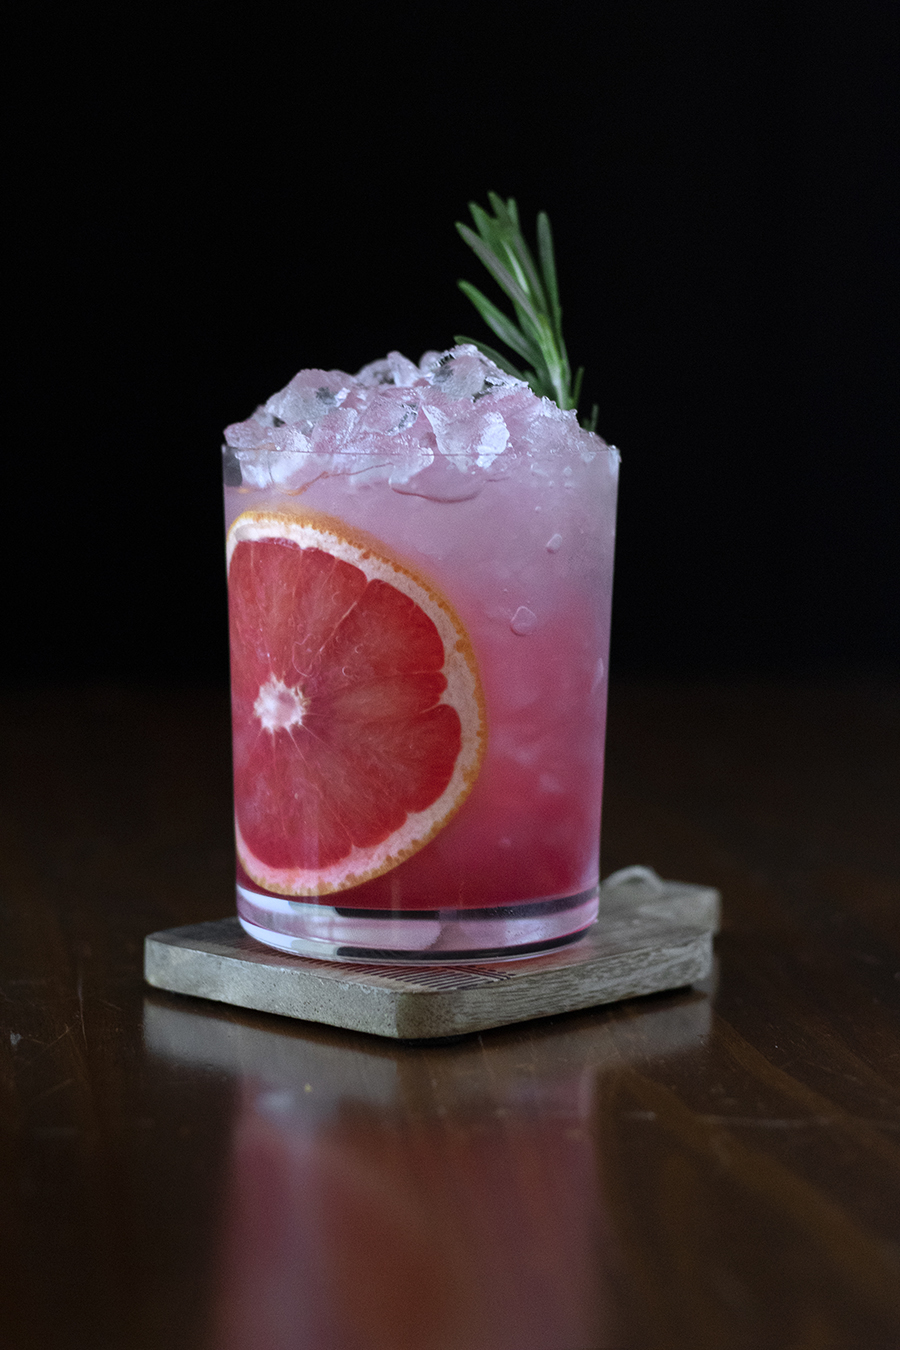 grapefruit and pomegranate vodka sour